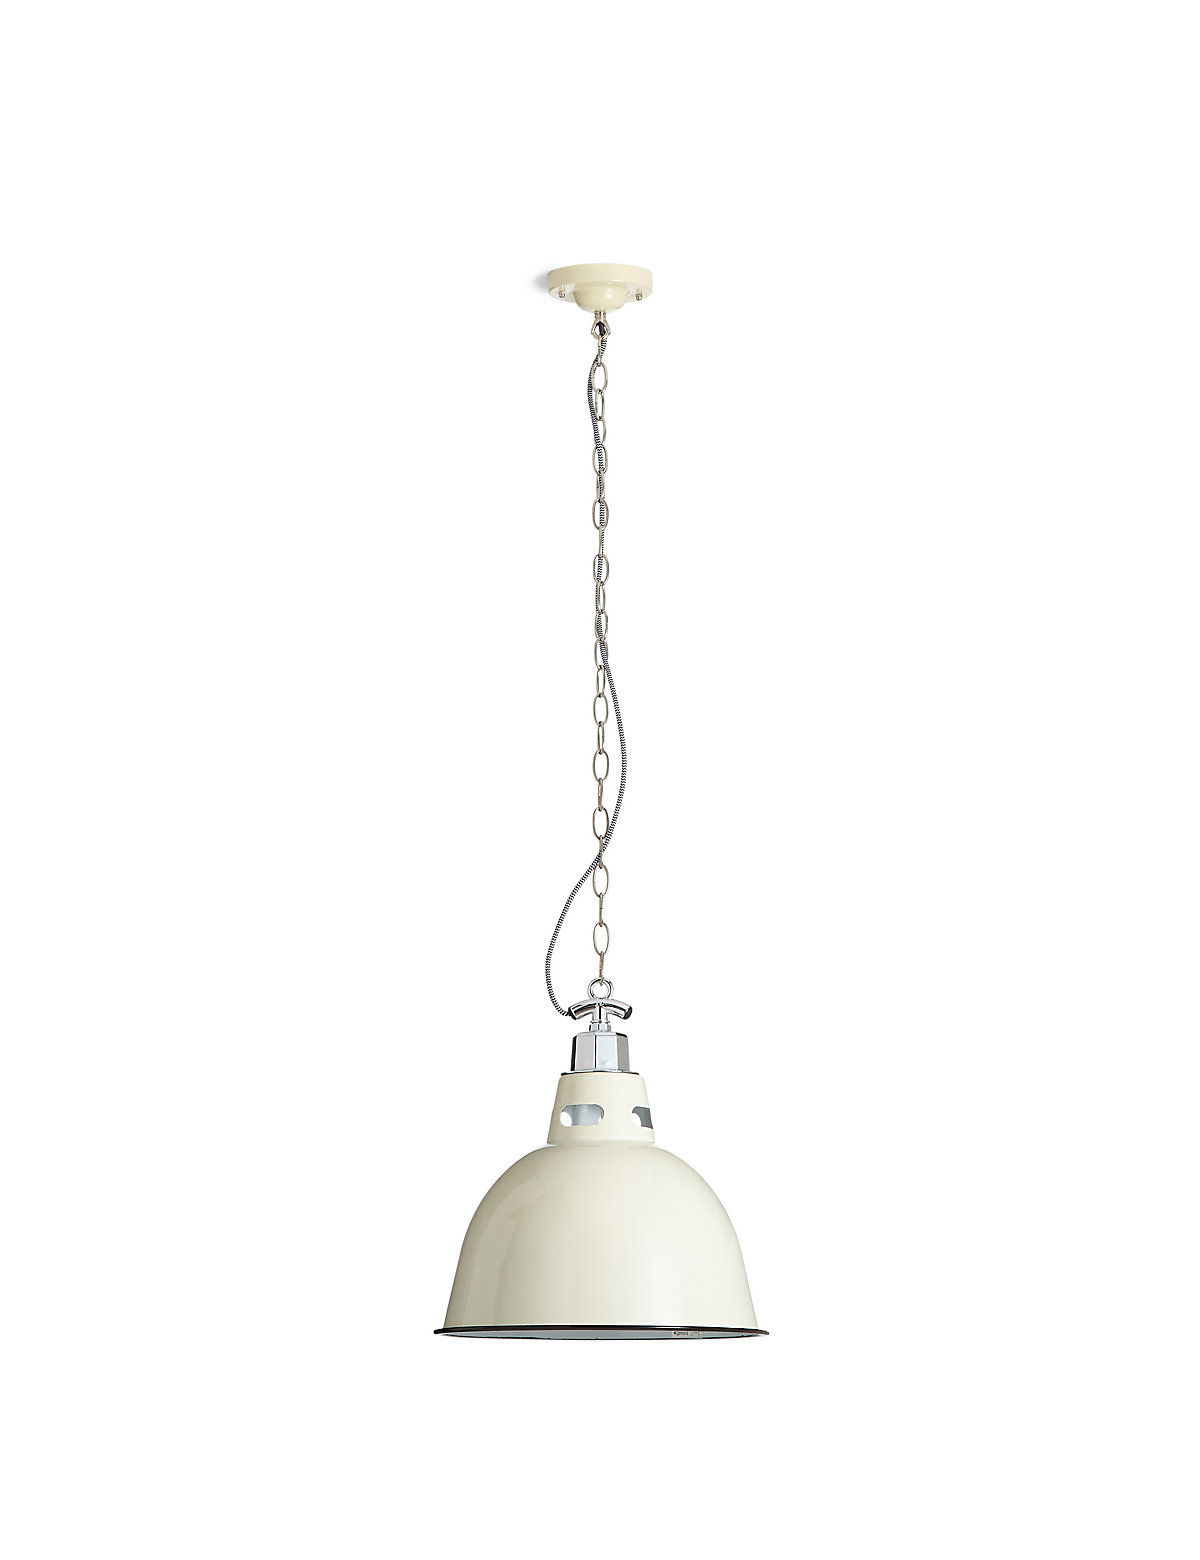 Ceiling Lights At Marks And Spencers : Marks spencer catalogue lighting from